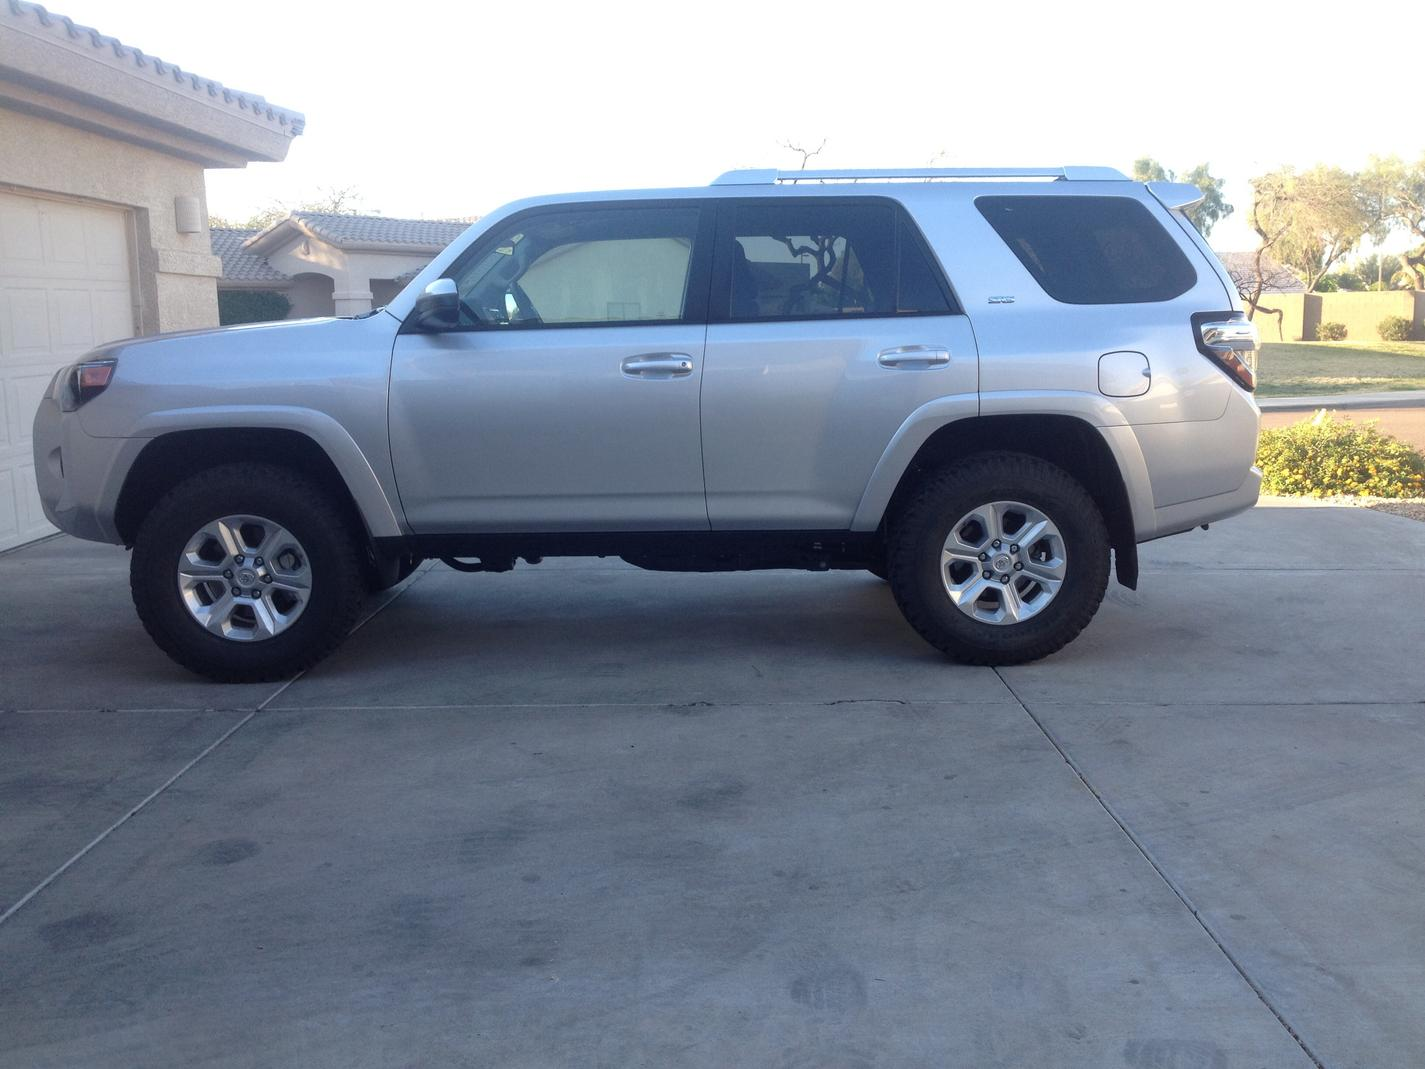 Toyota 4runner Forum Largest 4runner Forum View Single Post 275 70 17 Picture Request